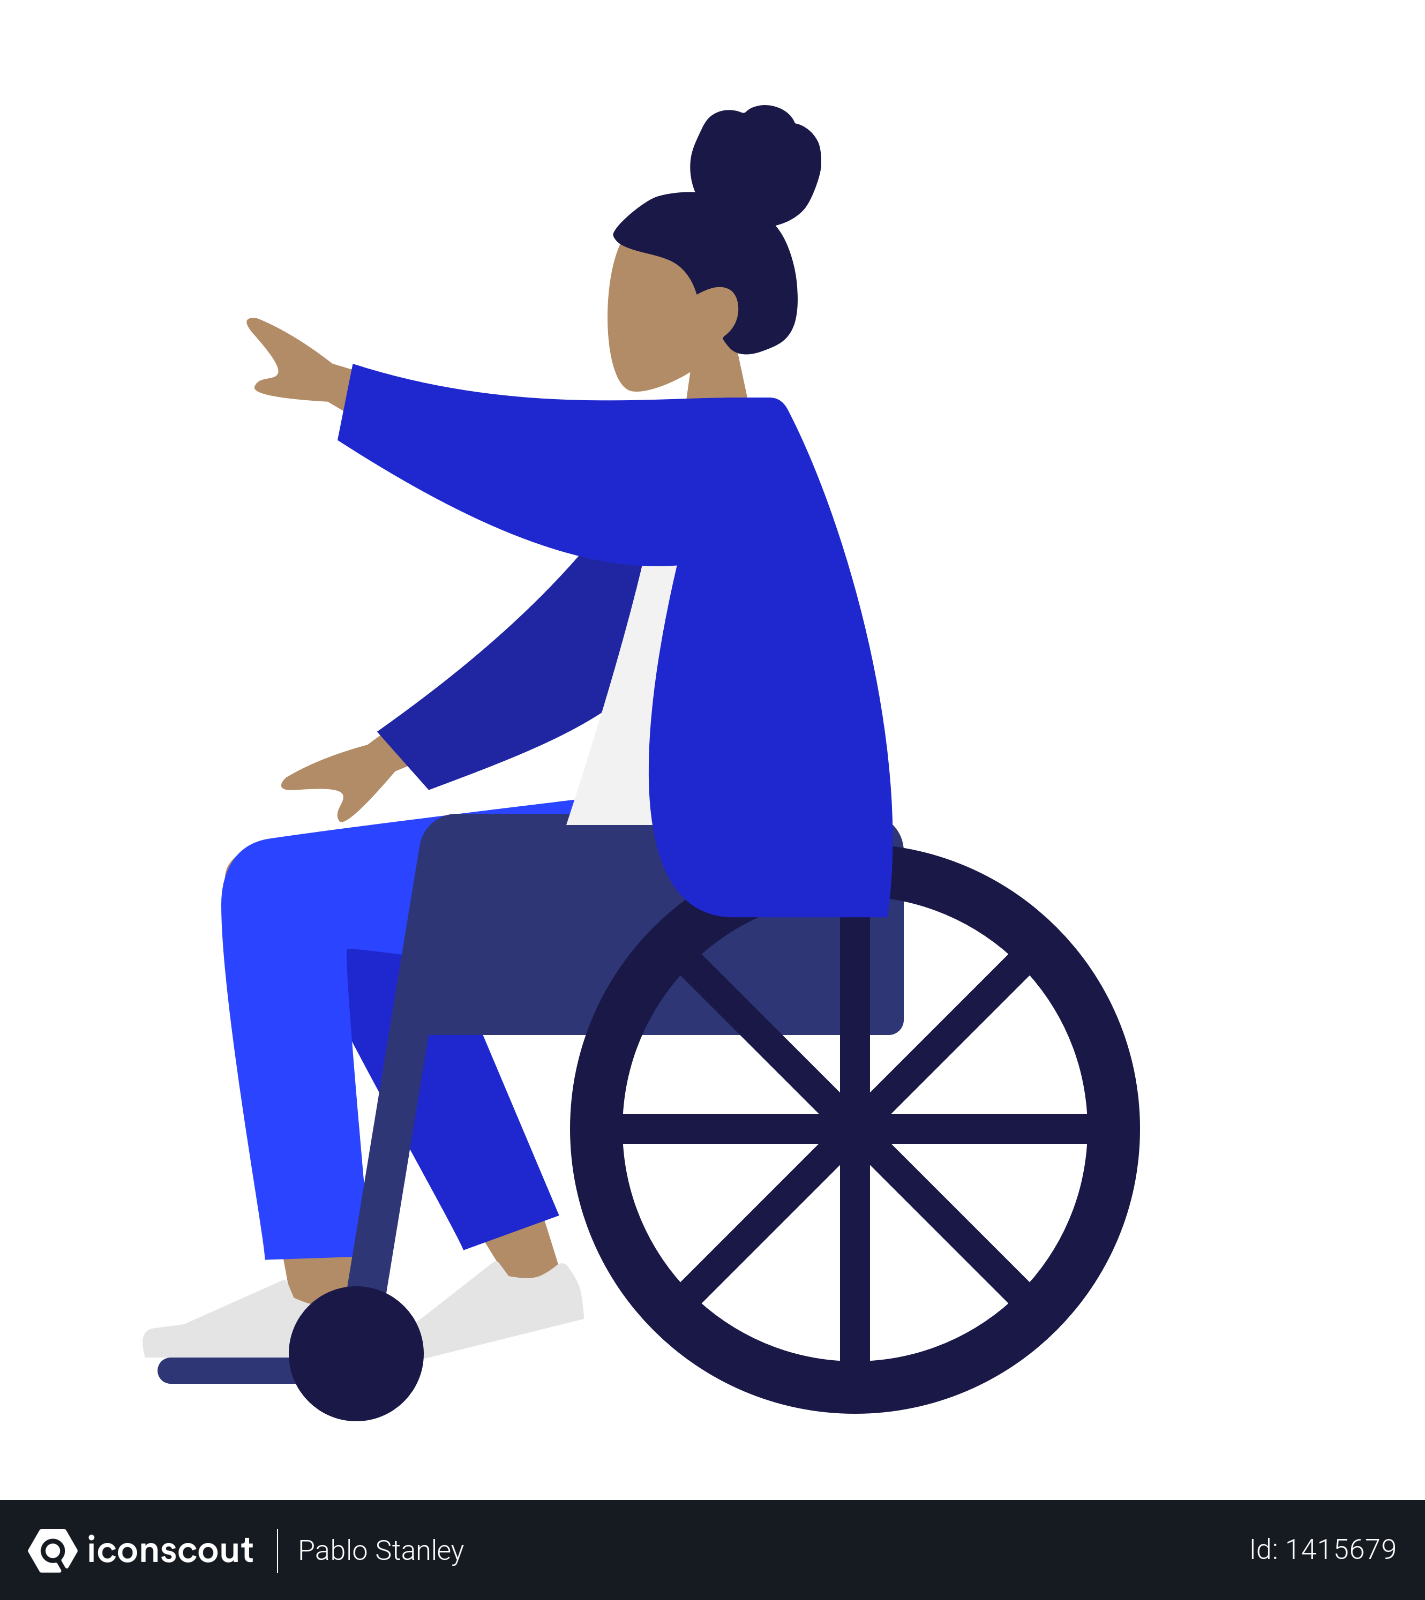 Free Handicapped Woman Sitting On Wheelchair Illustration Download In Png Vector Format Illustration People Illustration Wheelchair